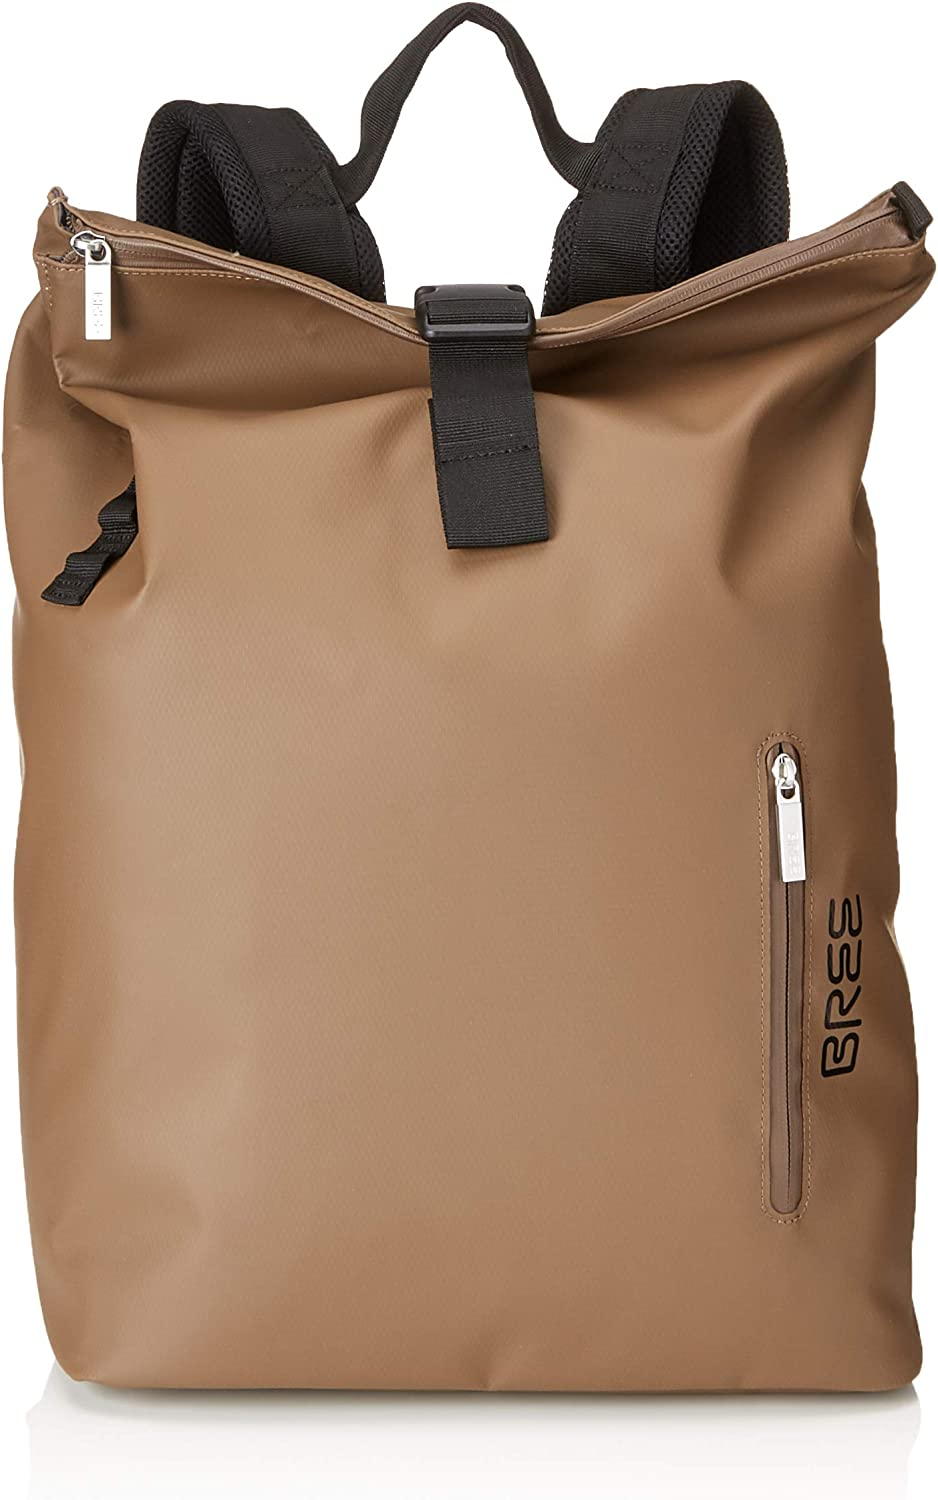 BREE Collection Punch 713, Clay, Backpack M S19, Women's Handbag, Brown (Clay), 15x42x34 cm (B x H T)